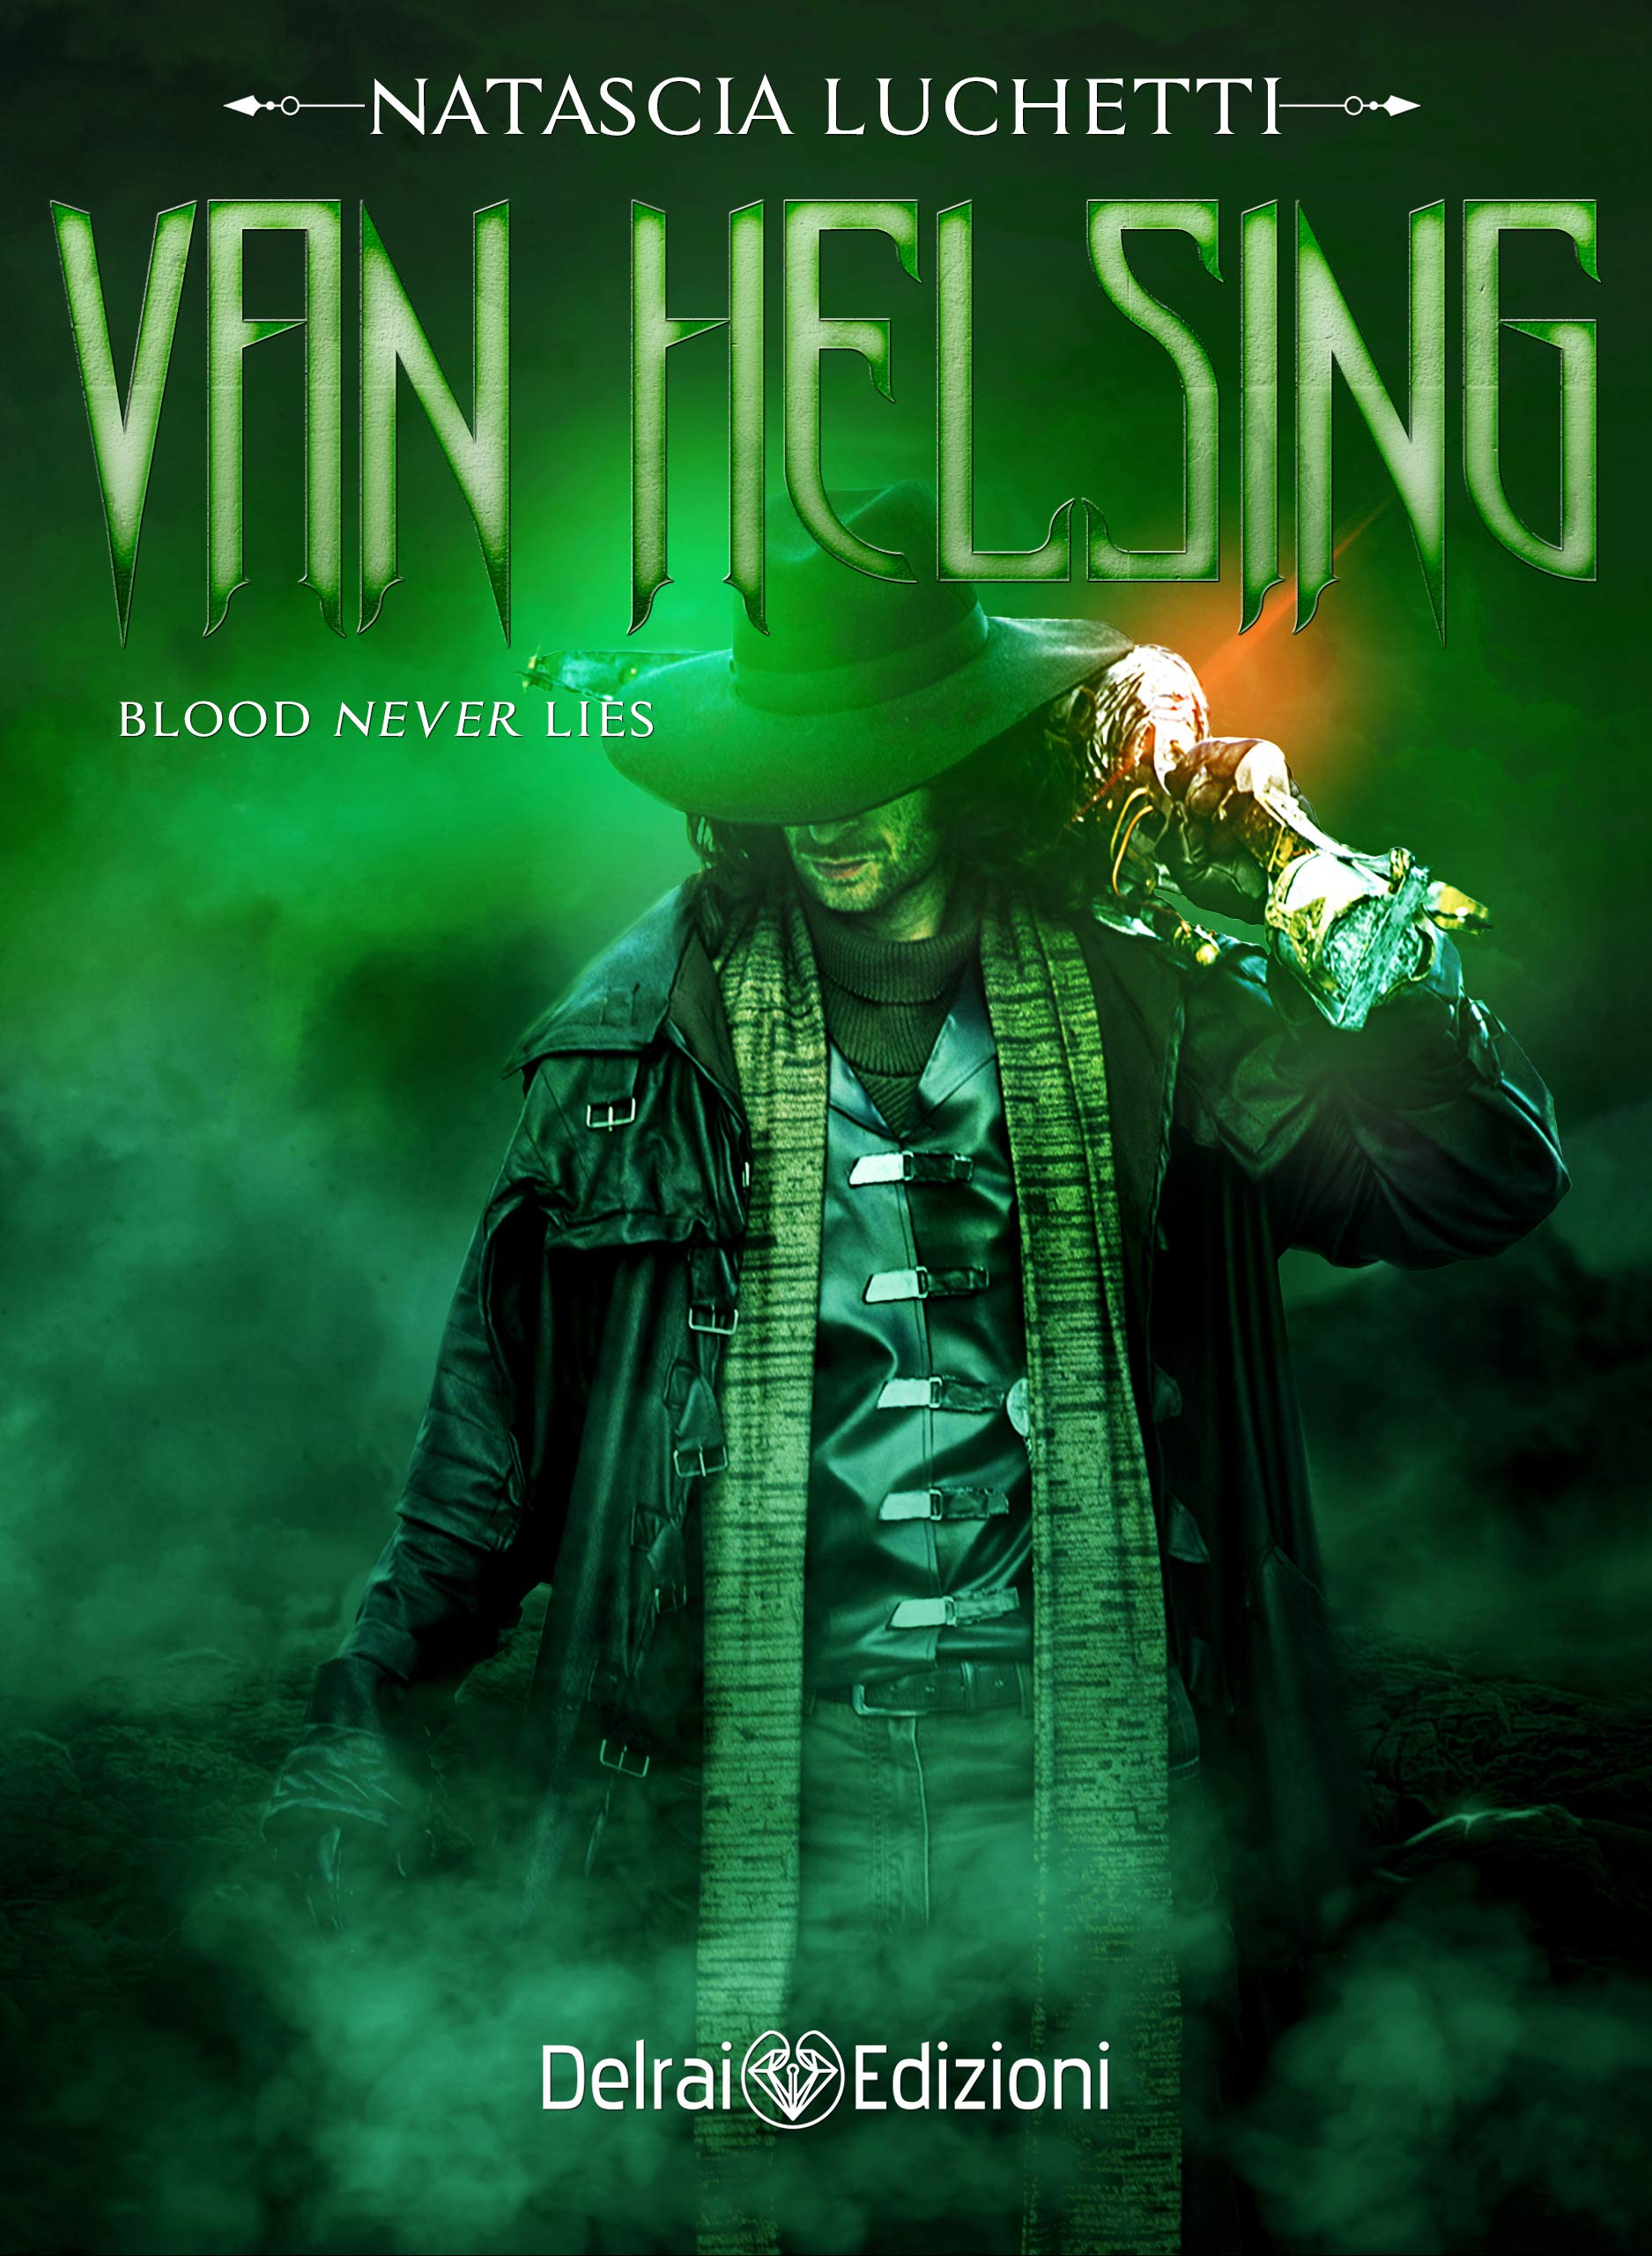 Amazon.it: Van Helsing. Blood never lies - Luchetti, Natascia - Libri